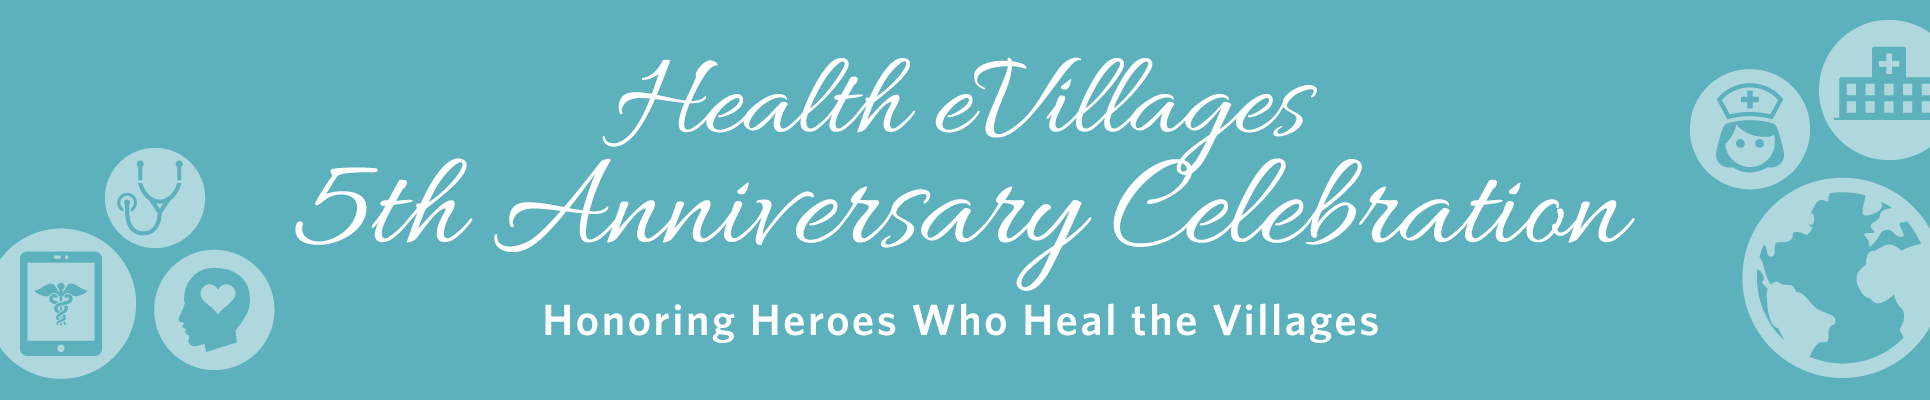 Health eVillages 5th Anniversary Celebration